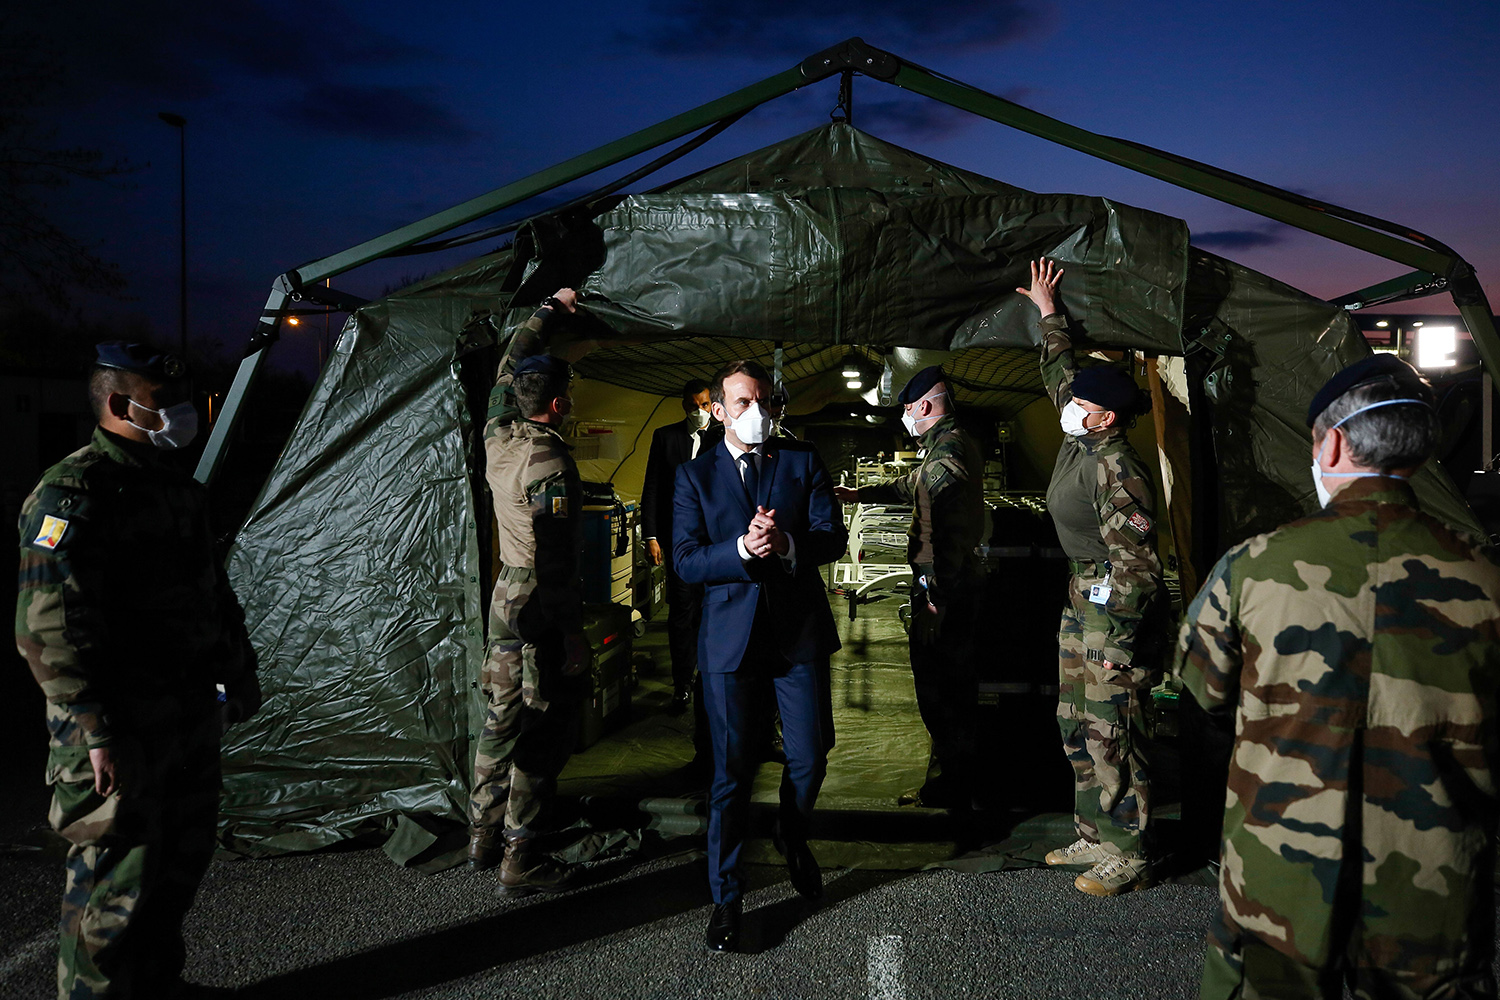 French President Emmanuel Macron exits a military field hospital outside Emile Muller Hospital in Mulhouse, France, on March 25. MATHIEU CUGNOT/POOL/AFP via Getty Images